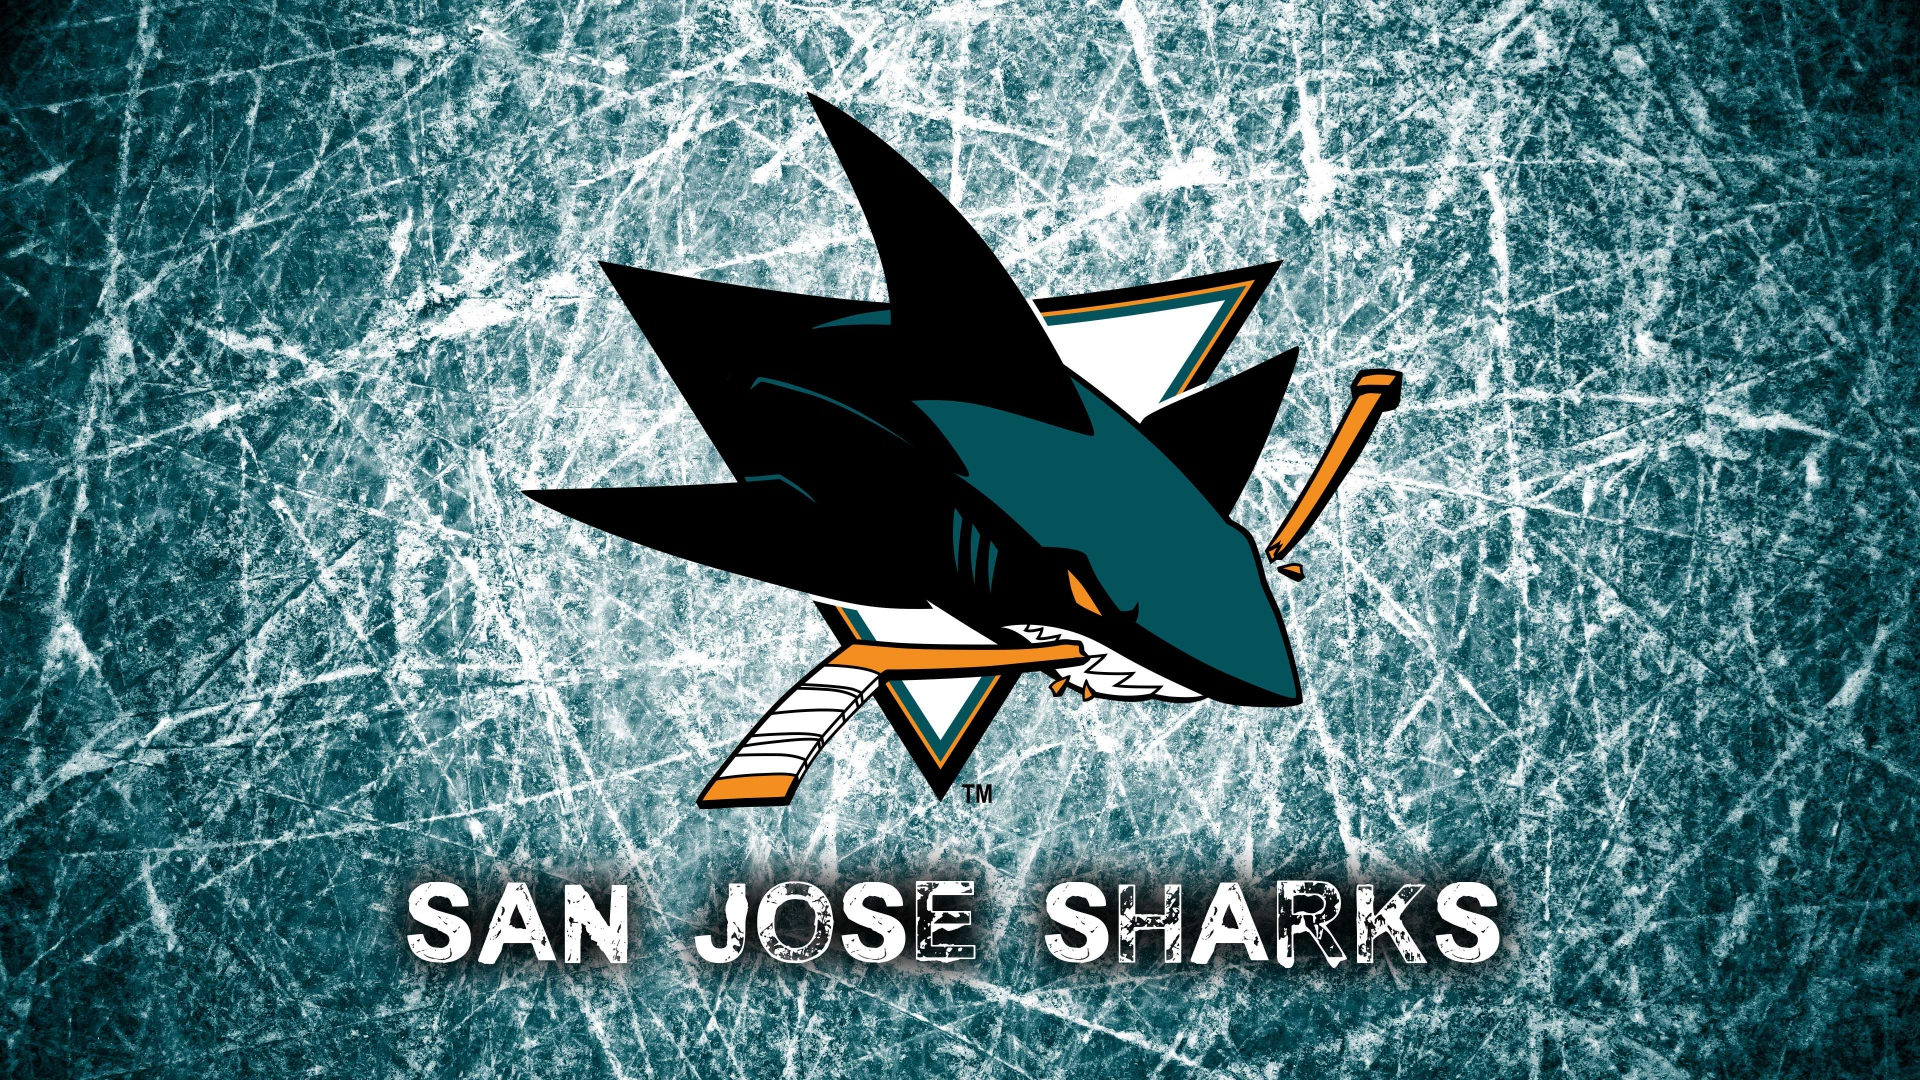 hd hintergrundbilder logo national hockey league san jose sharks 1920x1080